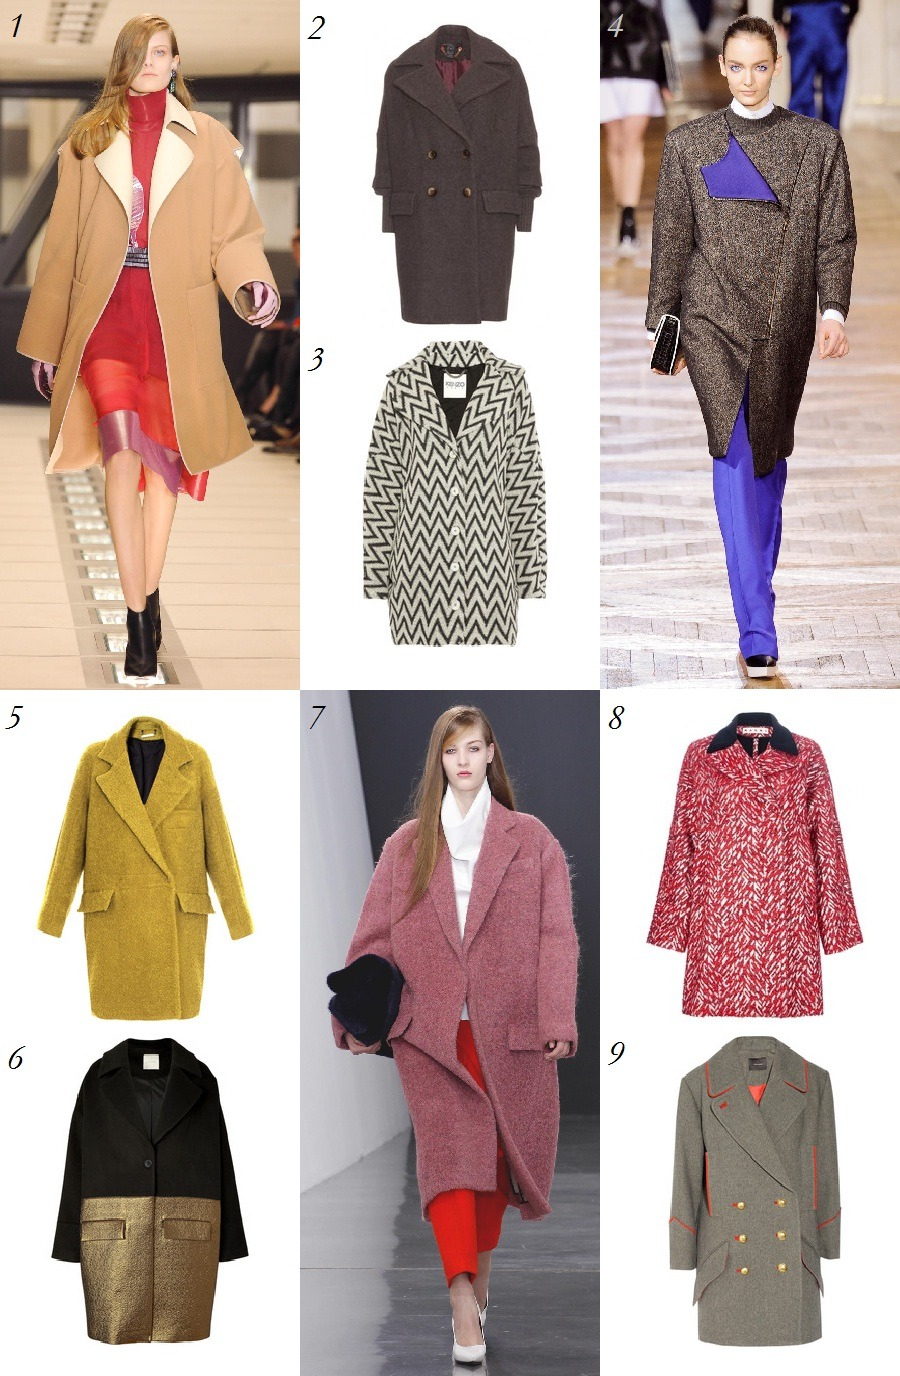 Trend Watch: Oversize Coats This season, bigger is better, with larger-than-life clutches, ruffles, and prints dominating the runways and the streets. Perhaps the most noticeable and timely of these big bold trends is the oversize coat. Seen at Acne, Chloe, Jil Sander, Balenciaga, and many more, these warm winter staples came in a range of colors, textures, and prints. Better yet, just think of all of the layers you'll be able to fit under them when the temperature dips.  1. Balenciaga 2. Marc by Marc Jacobs 3. Kenzo 4. Stella McCartney 5. Diane von Furstenberg 6. Hakaan 7. Celine 8. Marni 9. Isabel Marant